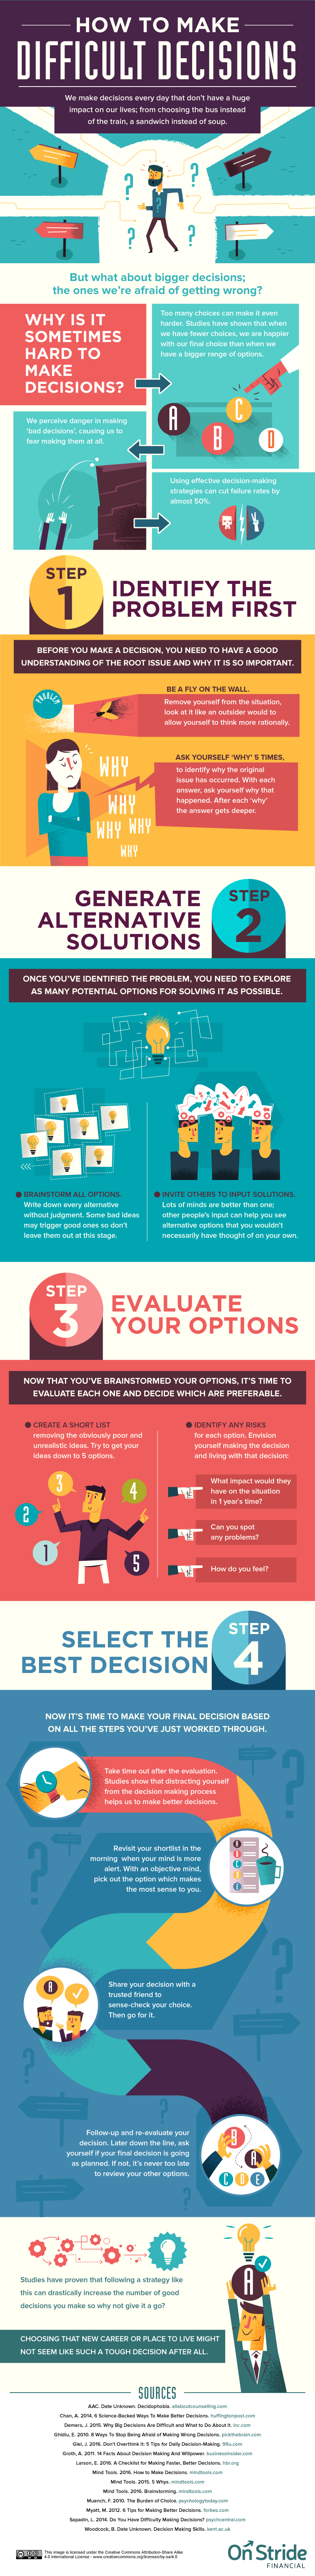 4 Steps that Empower You to Make Difficult Decisions - Infographic